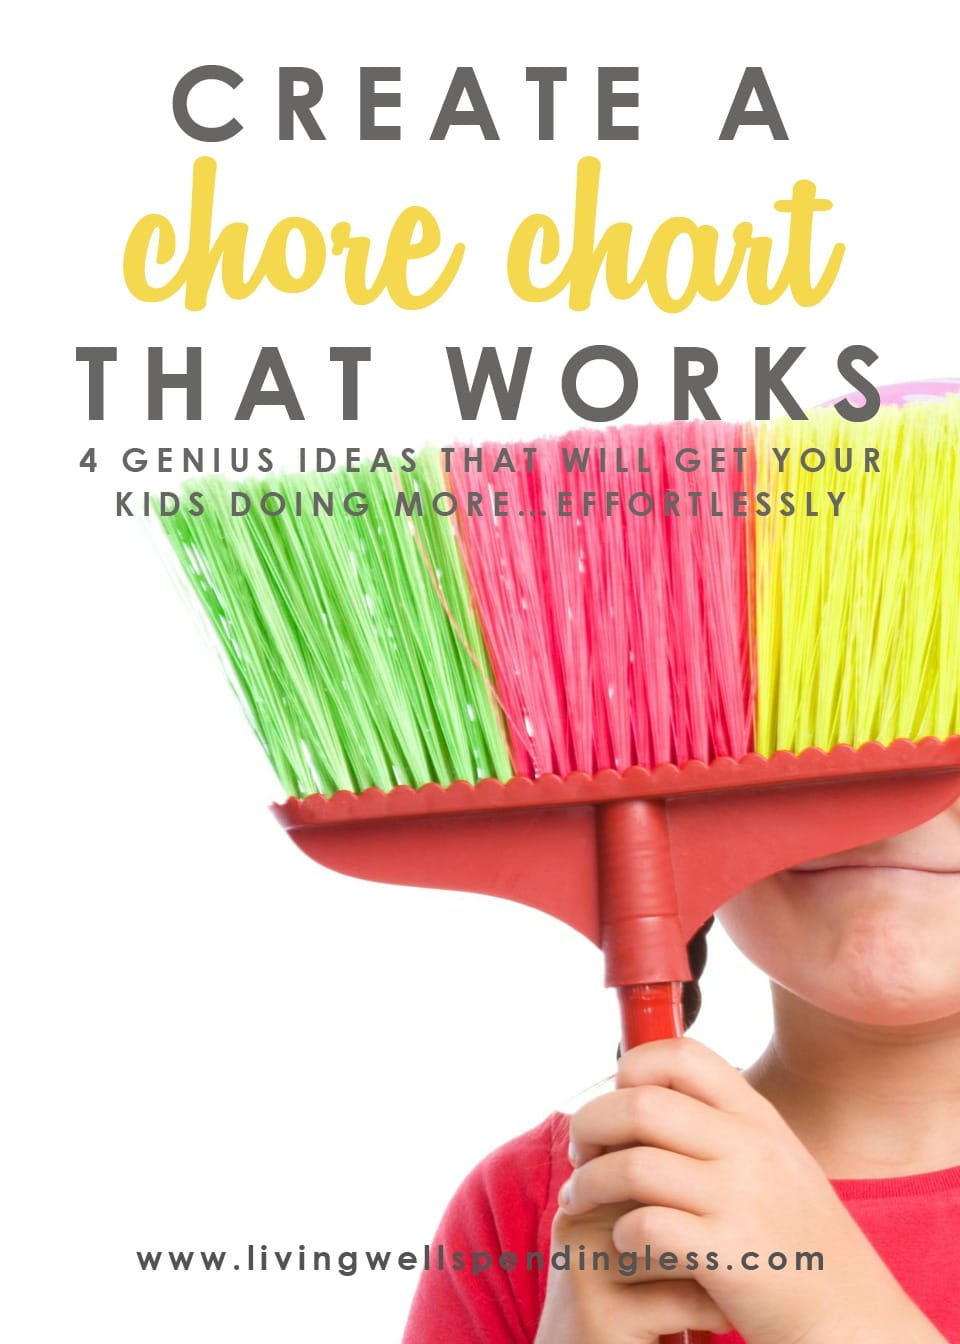 Are chores around your house well, a chore? It can be a challenge to get kids motivated to help out around the house, but getting kids to do their chores not only makes family life run smoother, it is essential to their own development and self-esteem. Don't miss these four simple steps you can take right now to create a chore chart that works. This in-depth post even includes four different types of printable chore charts, plus a helpful list of age-appropriate chores!